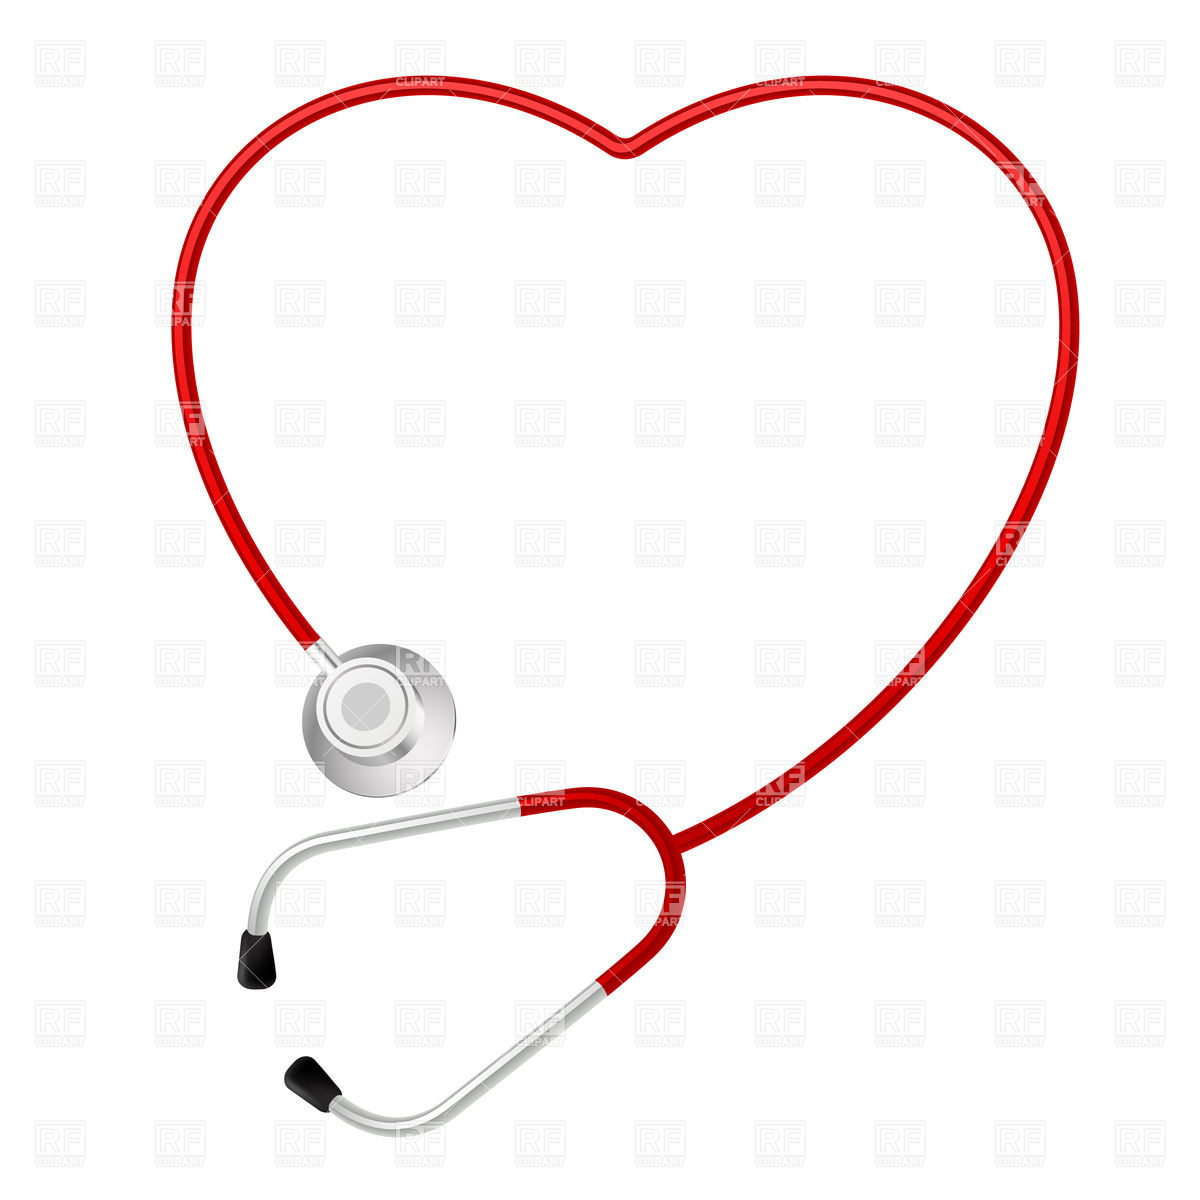 1200x1200 Heart Shaped Stethoscope Vector Image Vector Artwork Of